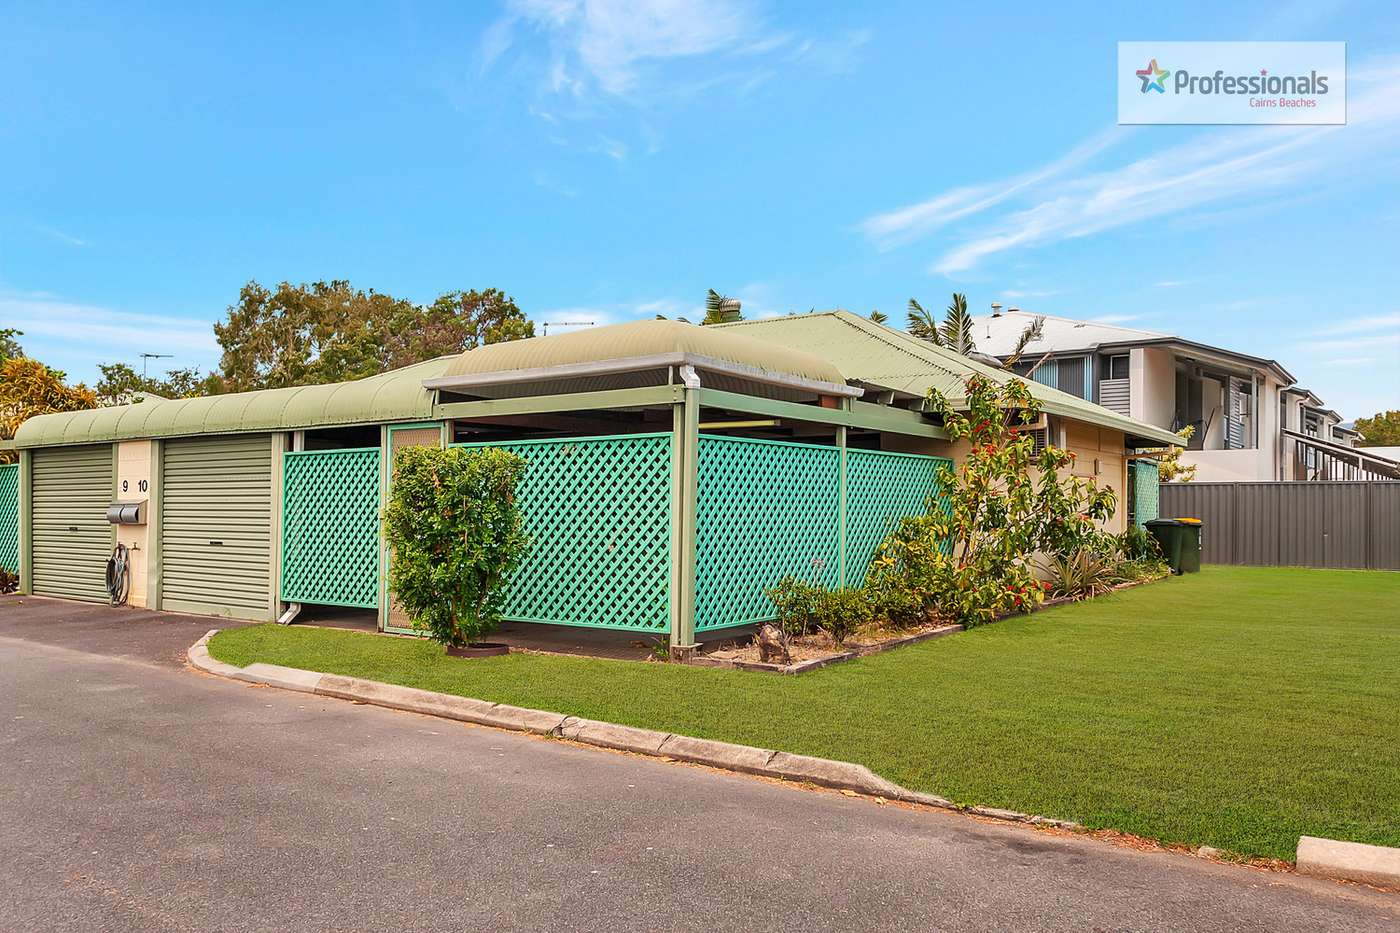 Main view of Homely unit listing, 10/91 Hoare Street, Manunda, QLD 4870